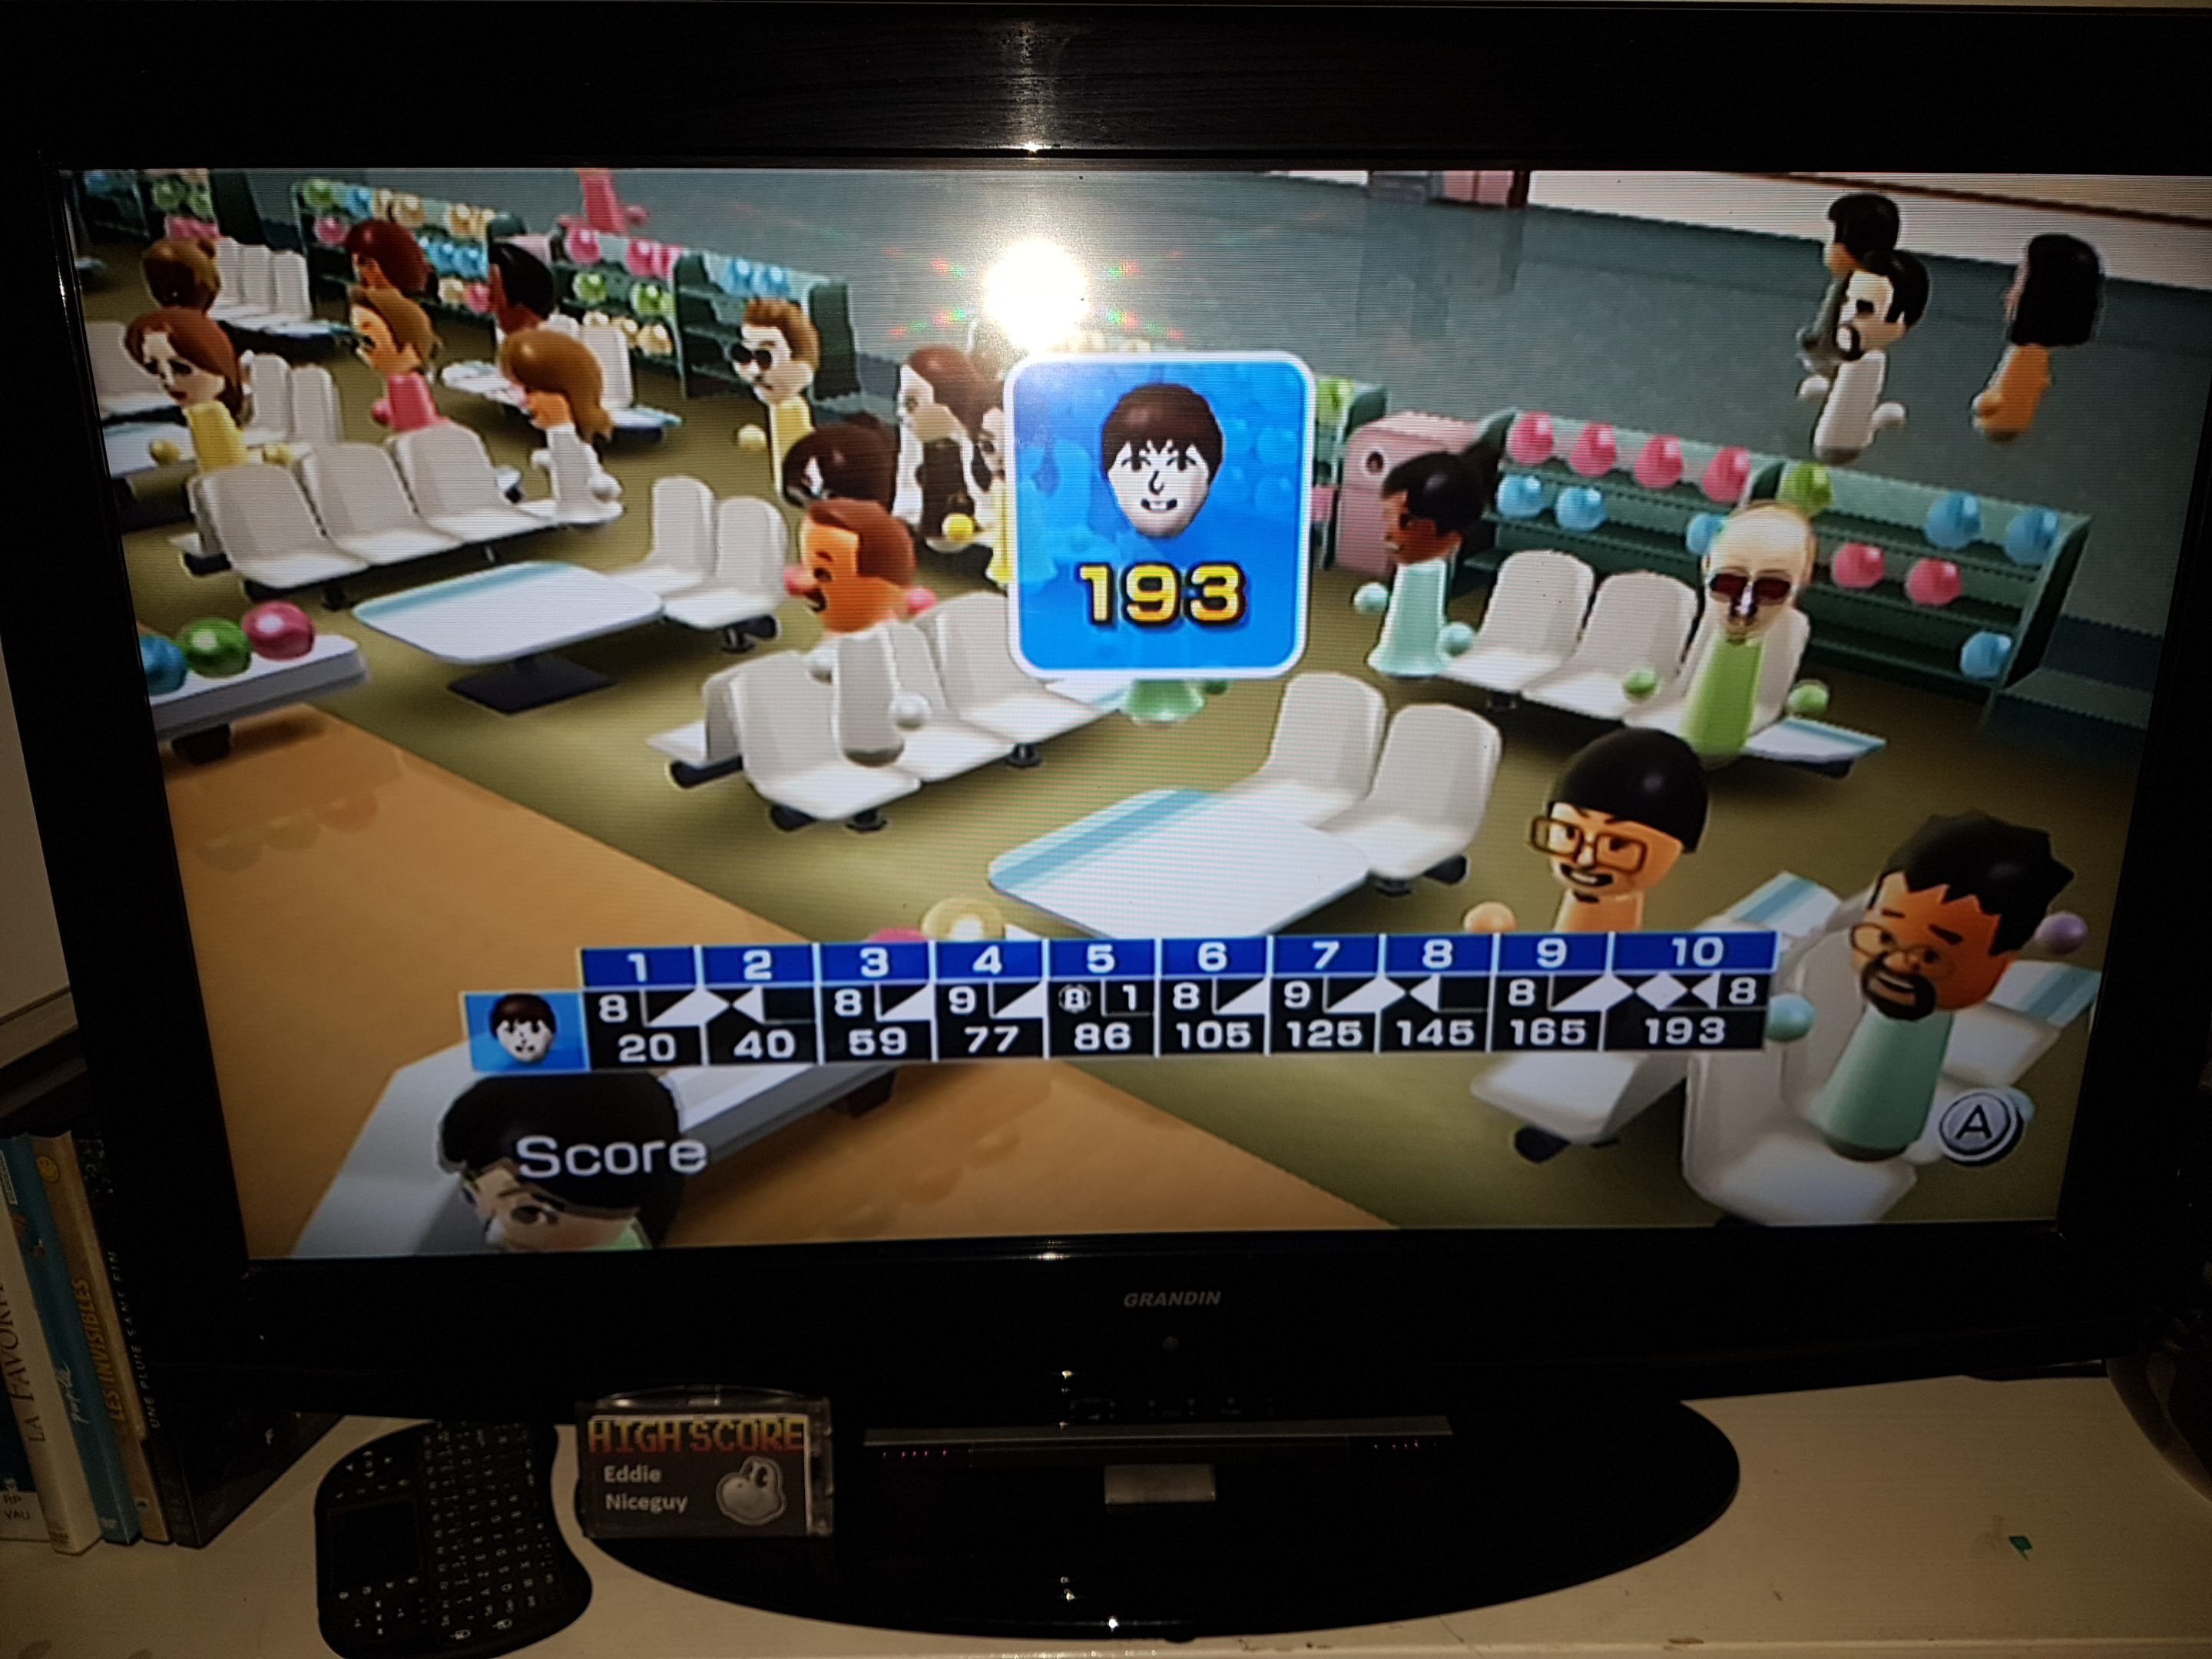 EddieNiceguy: Wii Sports: Bowling [Game Score] (Wii) 193 points on 2019-06-21 16:12:57